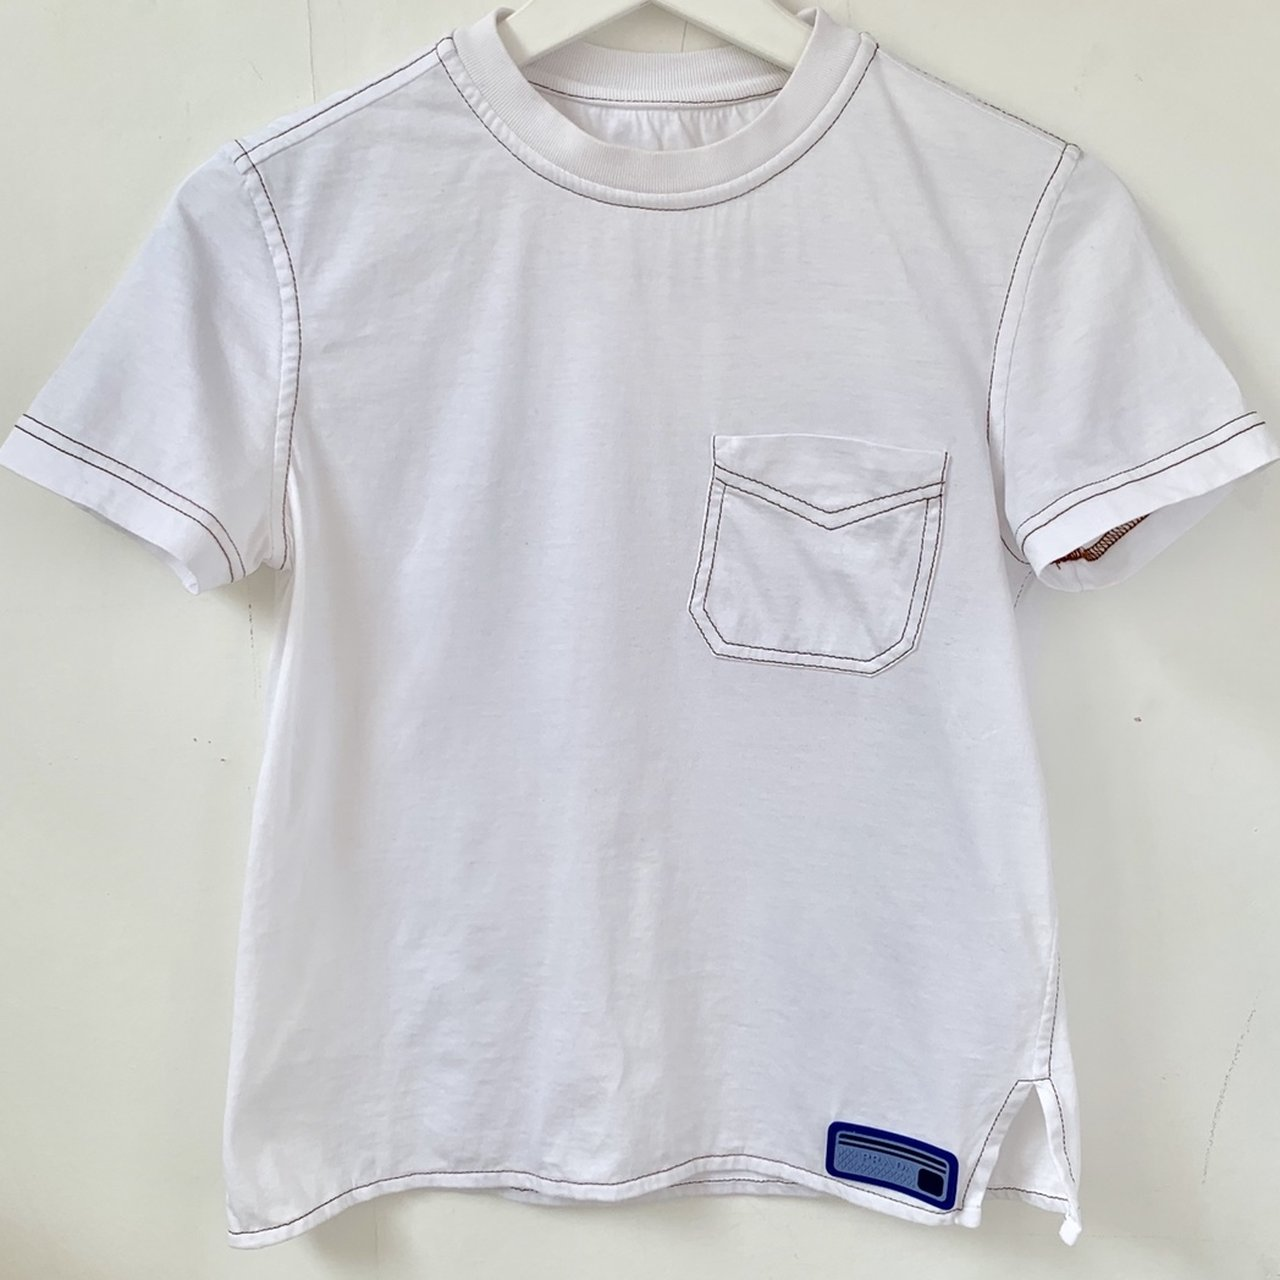 dd0825a60 Amazing AUTHENTIC vintage PRADA t-shirt with blue rubber and - Depop